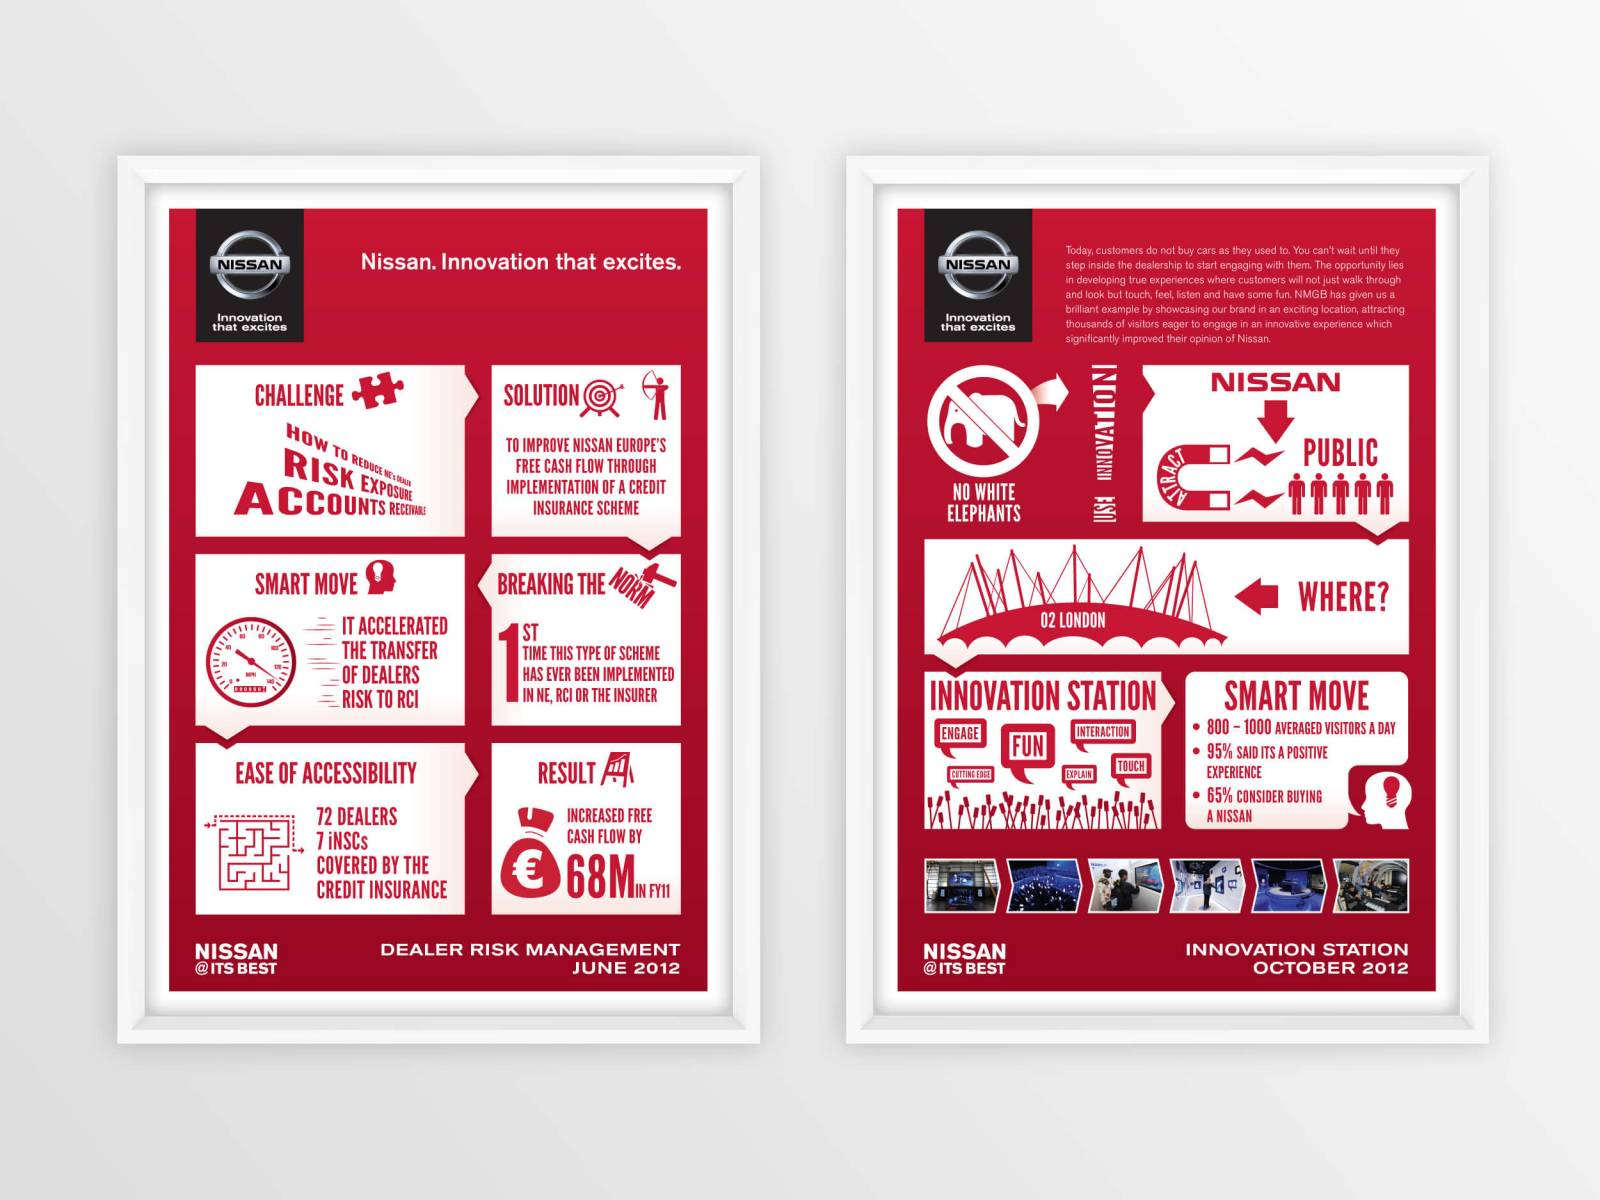 Nissan-poster-1-design-agency-graphic-design-canterbury.jpg